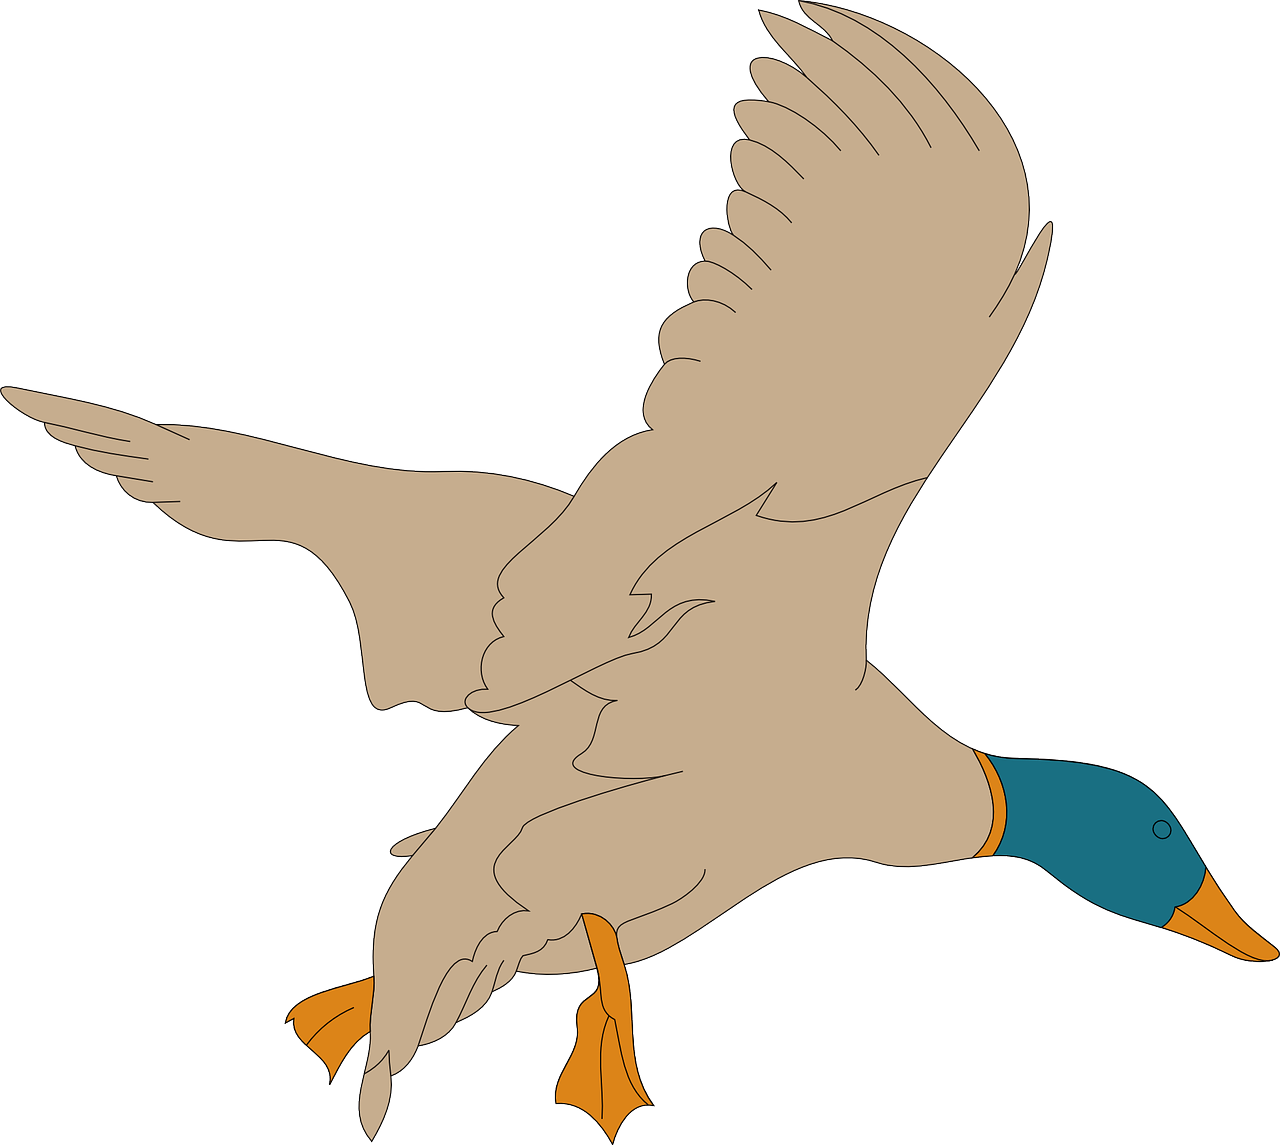 Feather clipart duck feather. Bird wings landing feathers